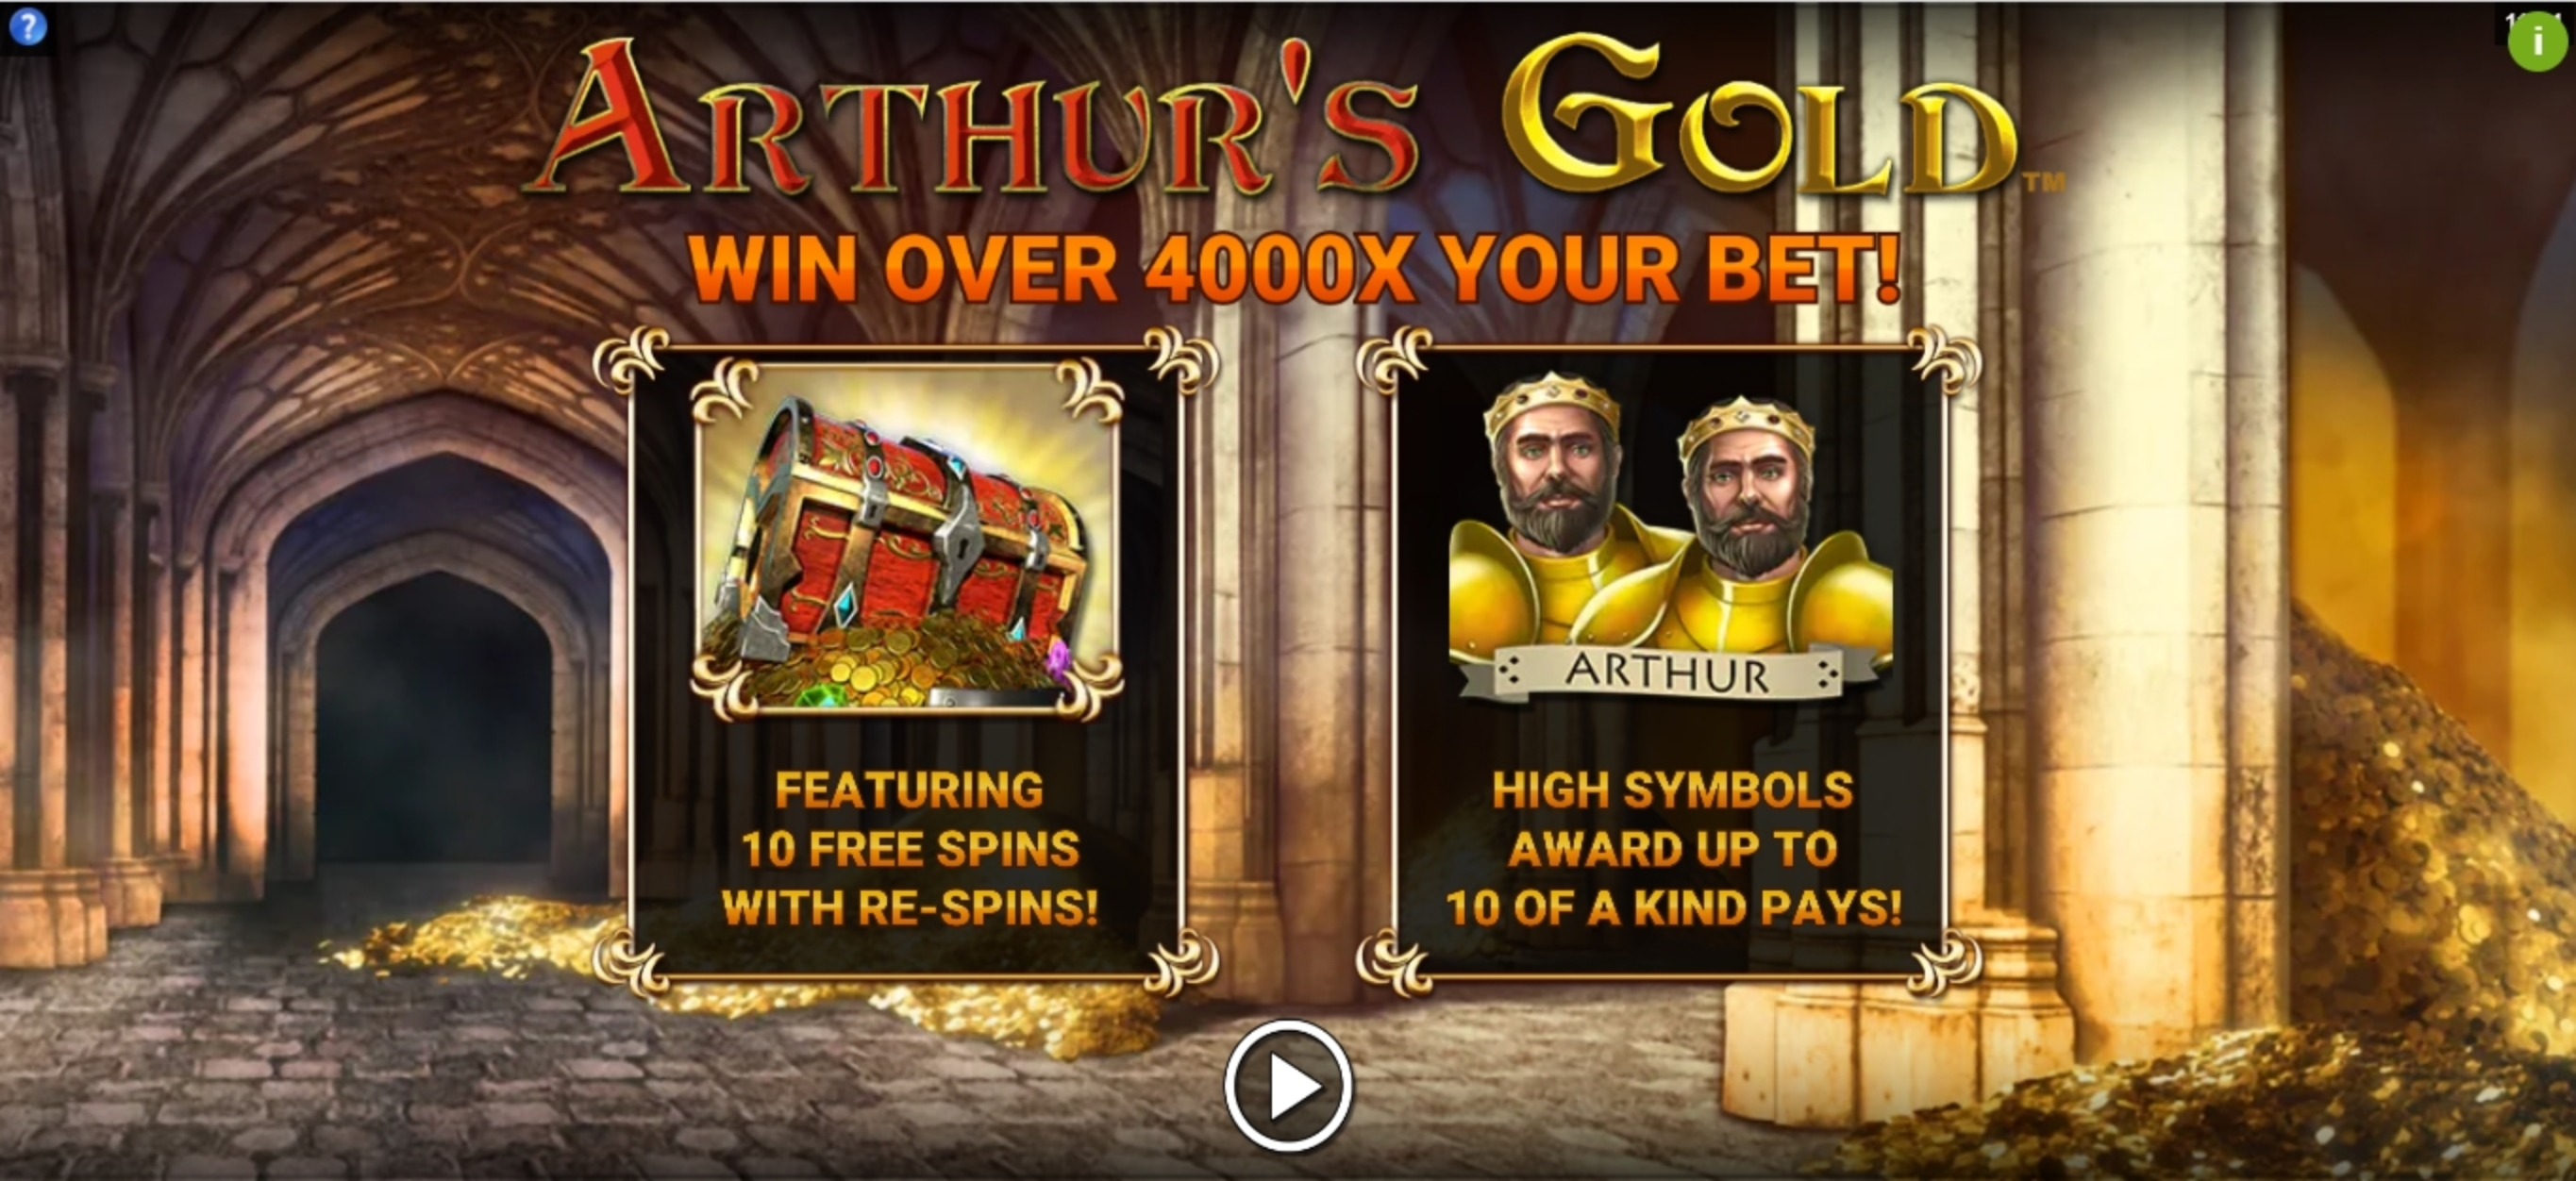 Play Arthurs Gold Free Casino Slot Game by Gold Coin Studios